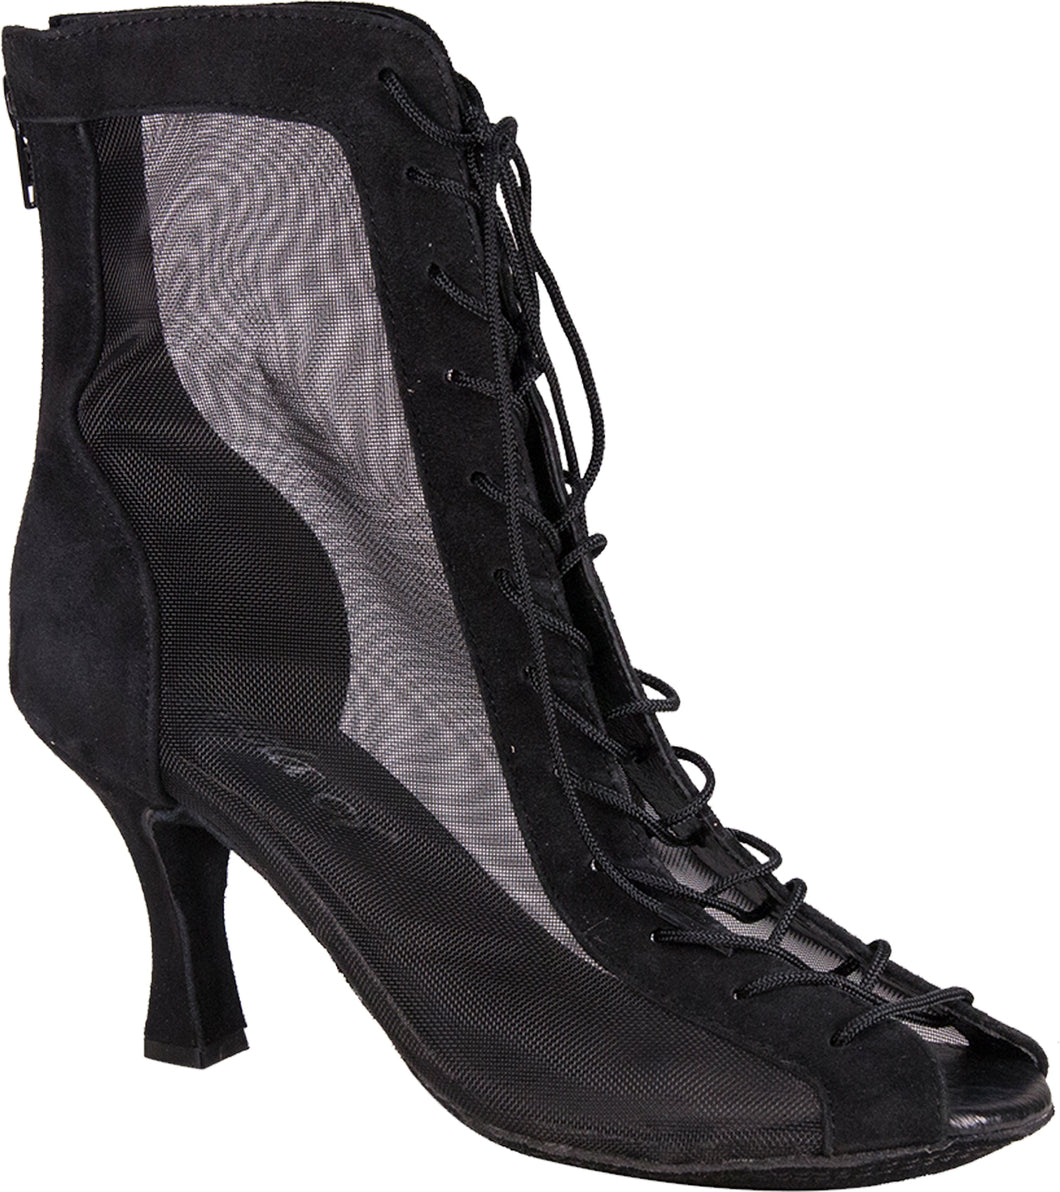 Godiva Chic Dance Boot Black 3